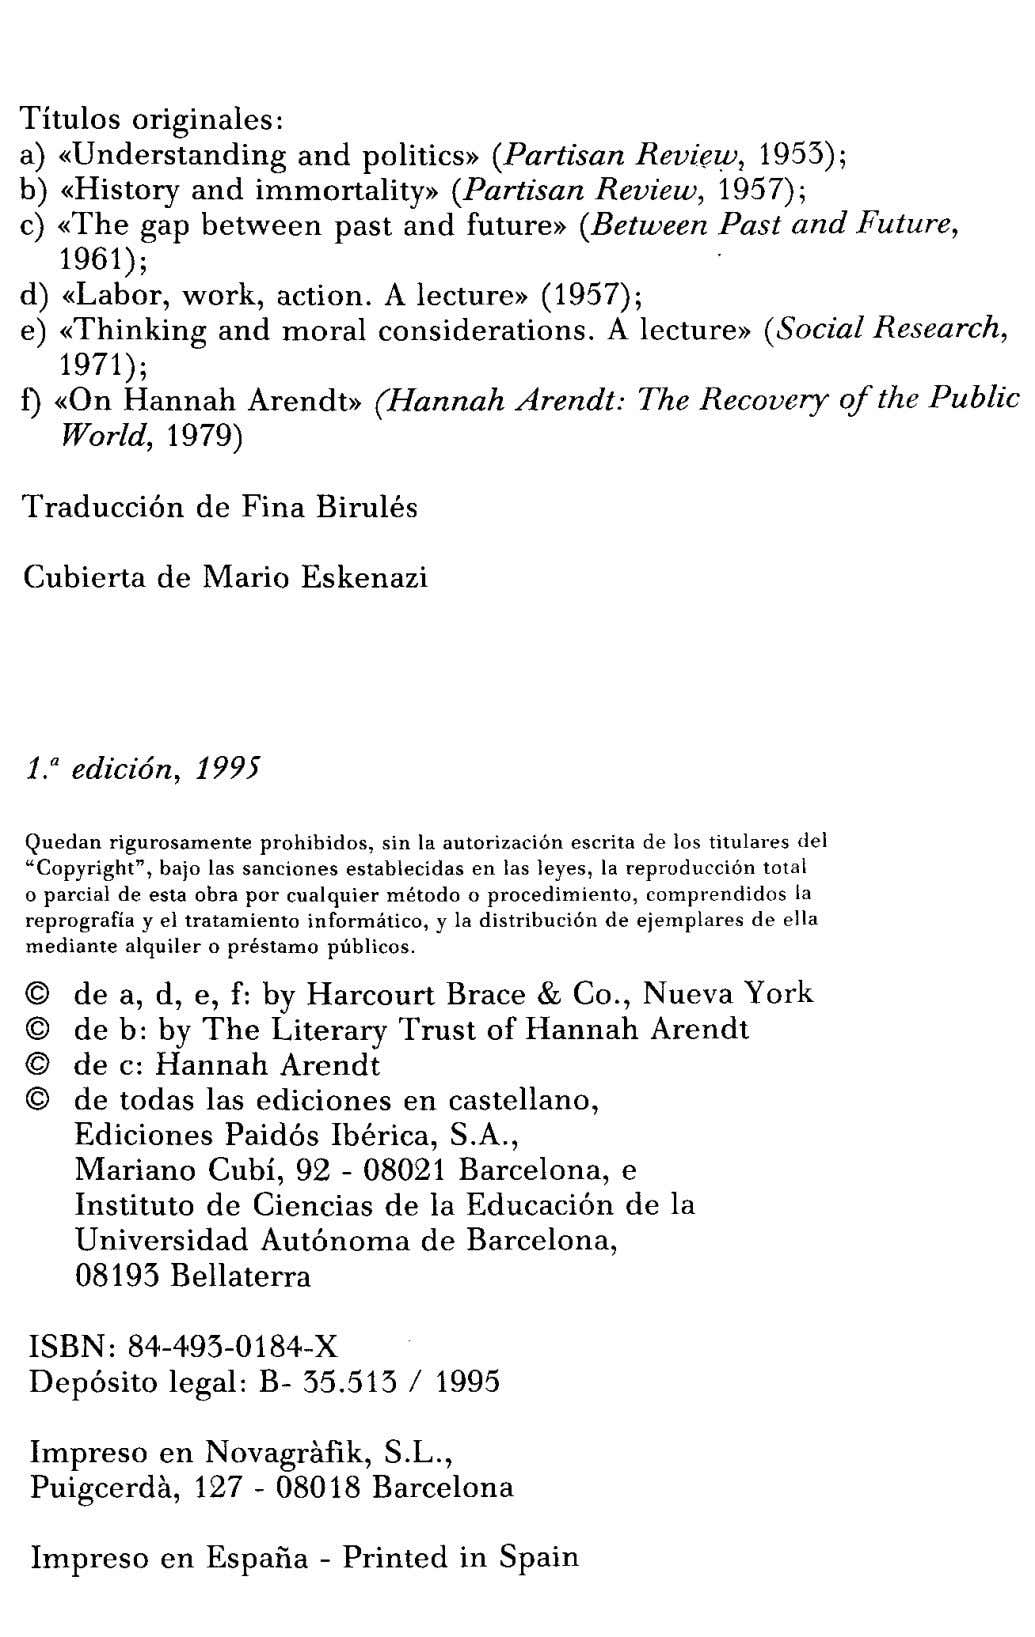 Títulos originales: a) «Understanding and politics» (Partisan Review, 1953); b) «History and immortality» (Partisan